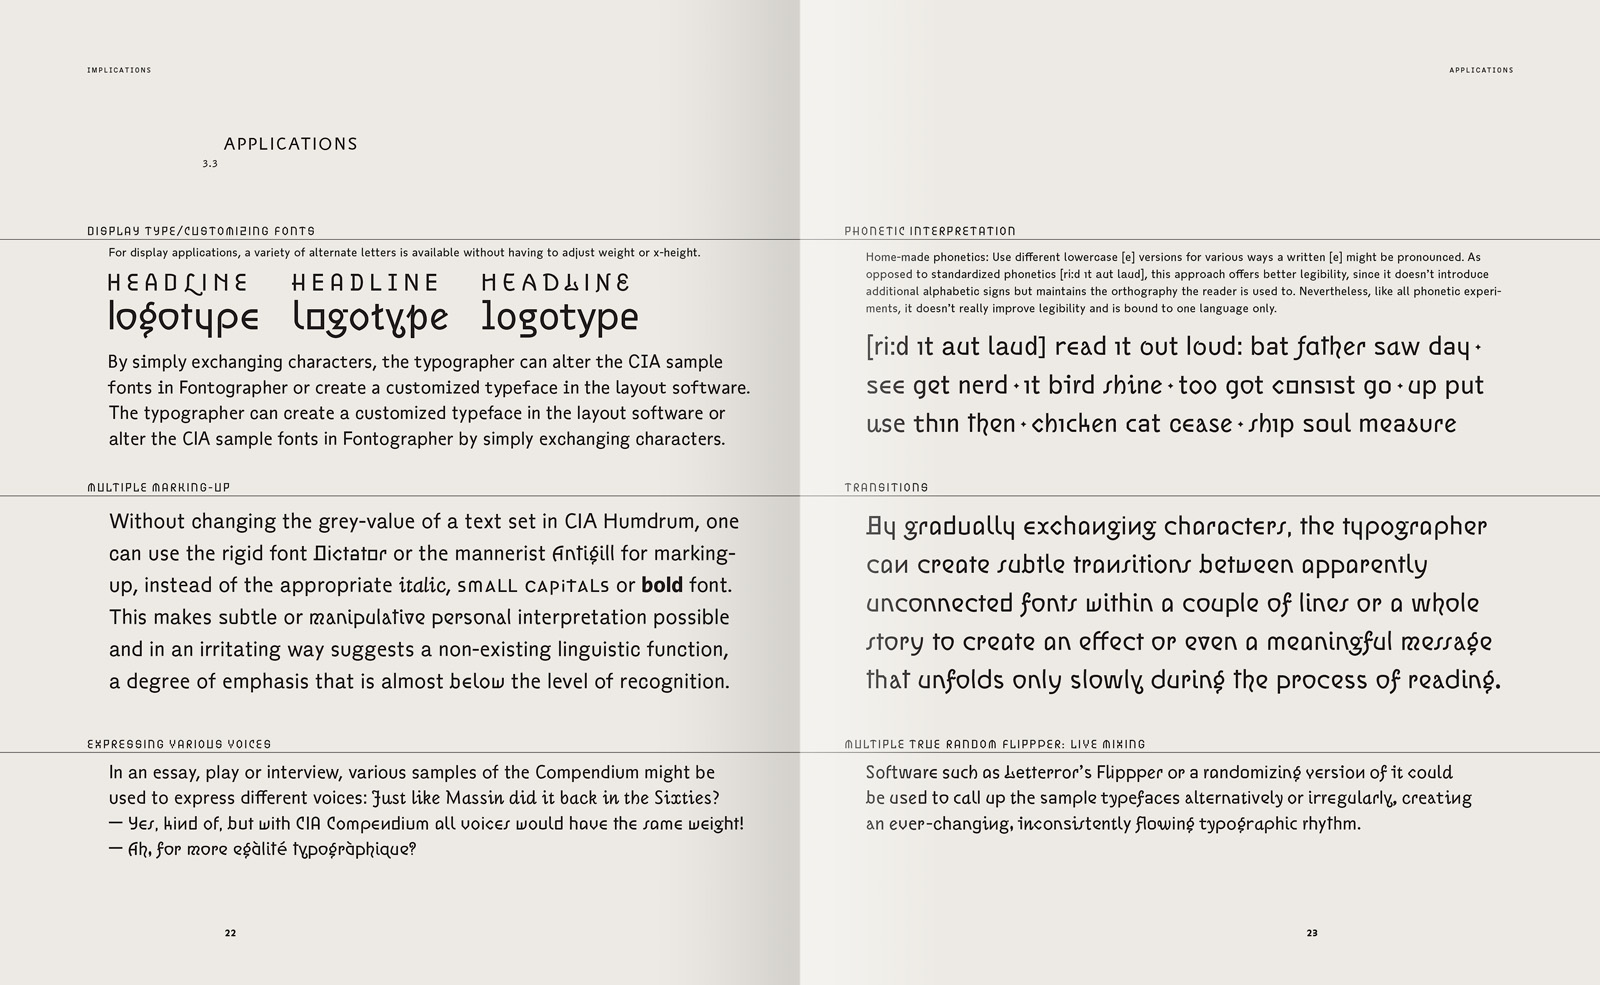 Compendium of Alphabets: An encyclopedic typeface system  - Jens